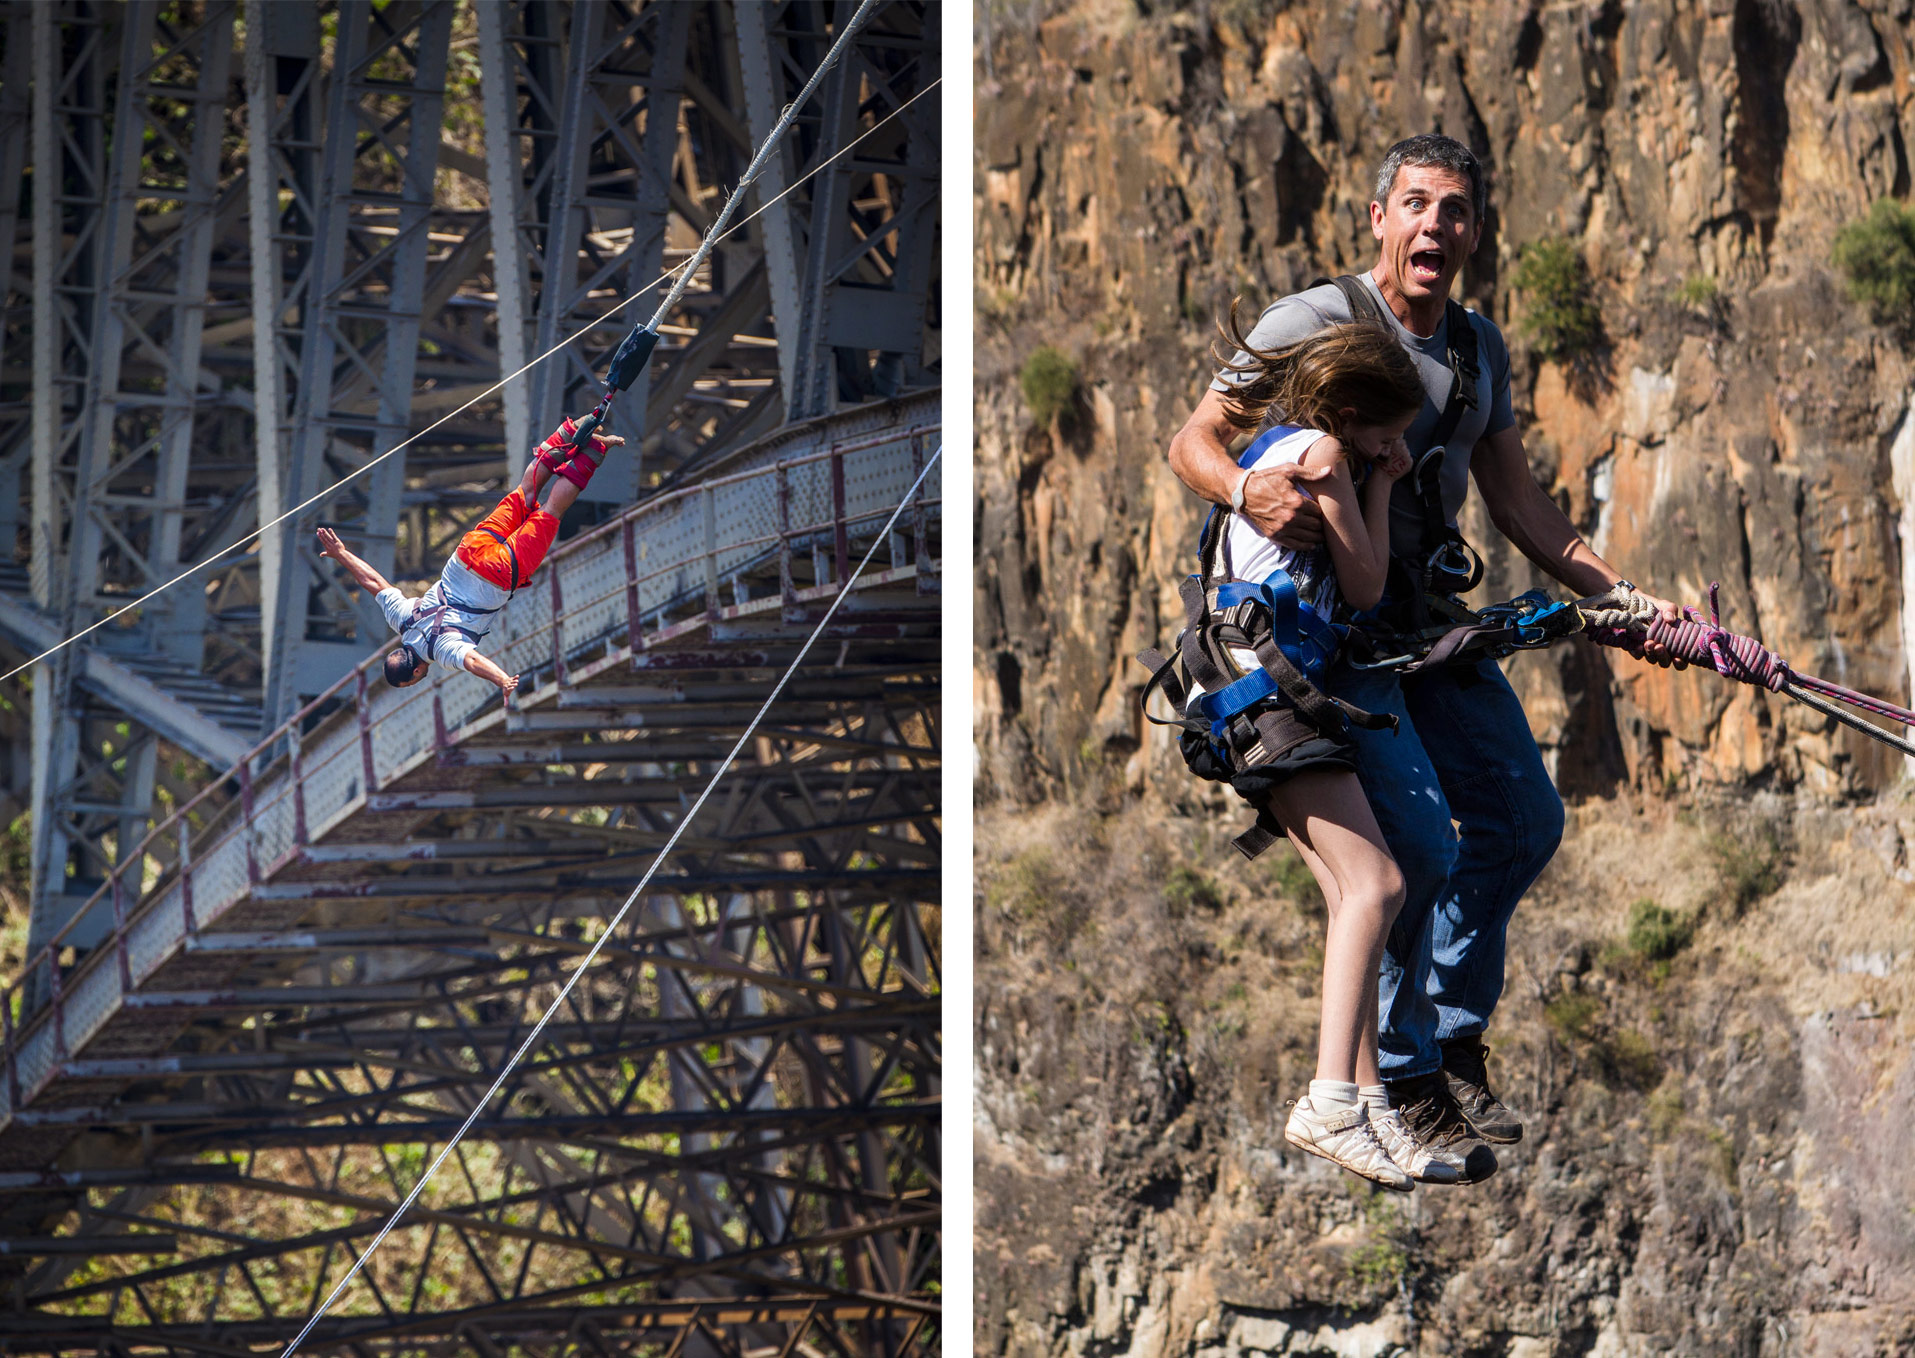 bungee jumping gorge swing vic falls